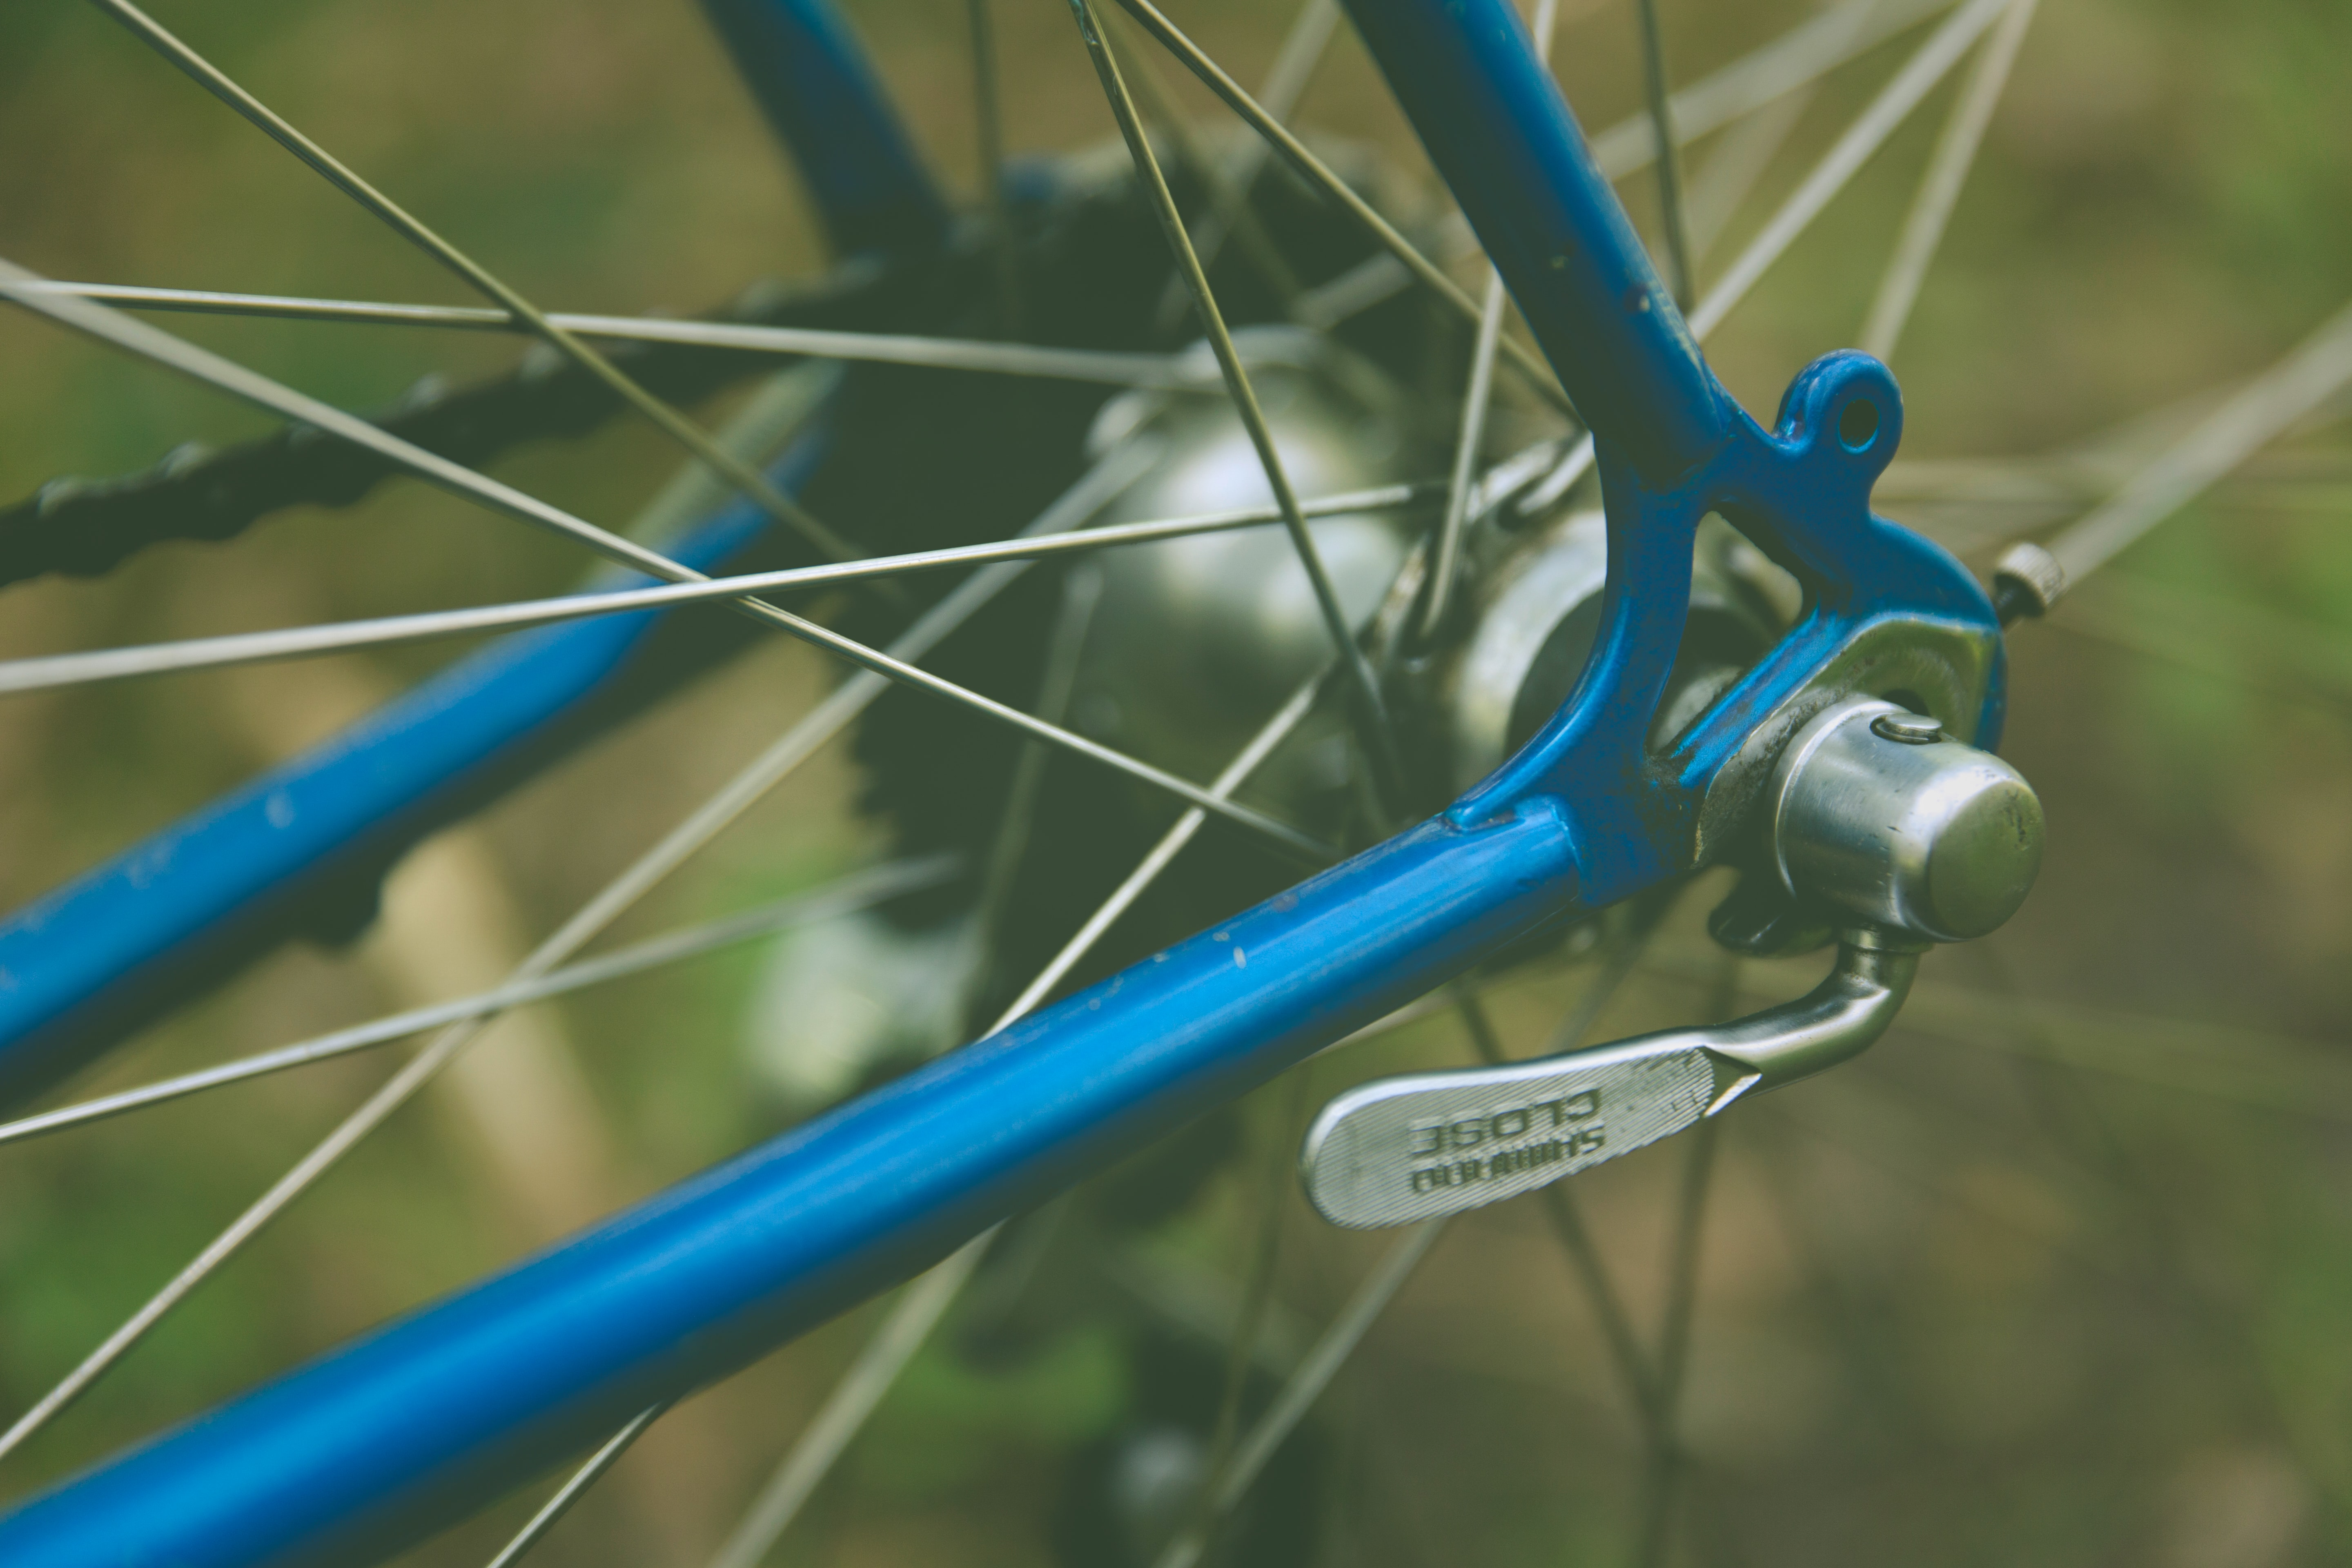 Spokes and framing details on a blue bicycle